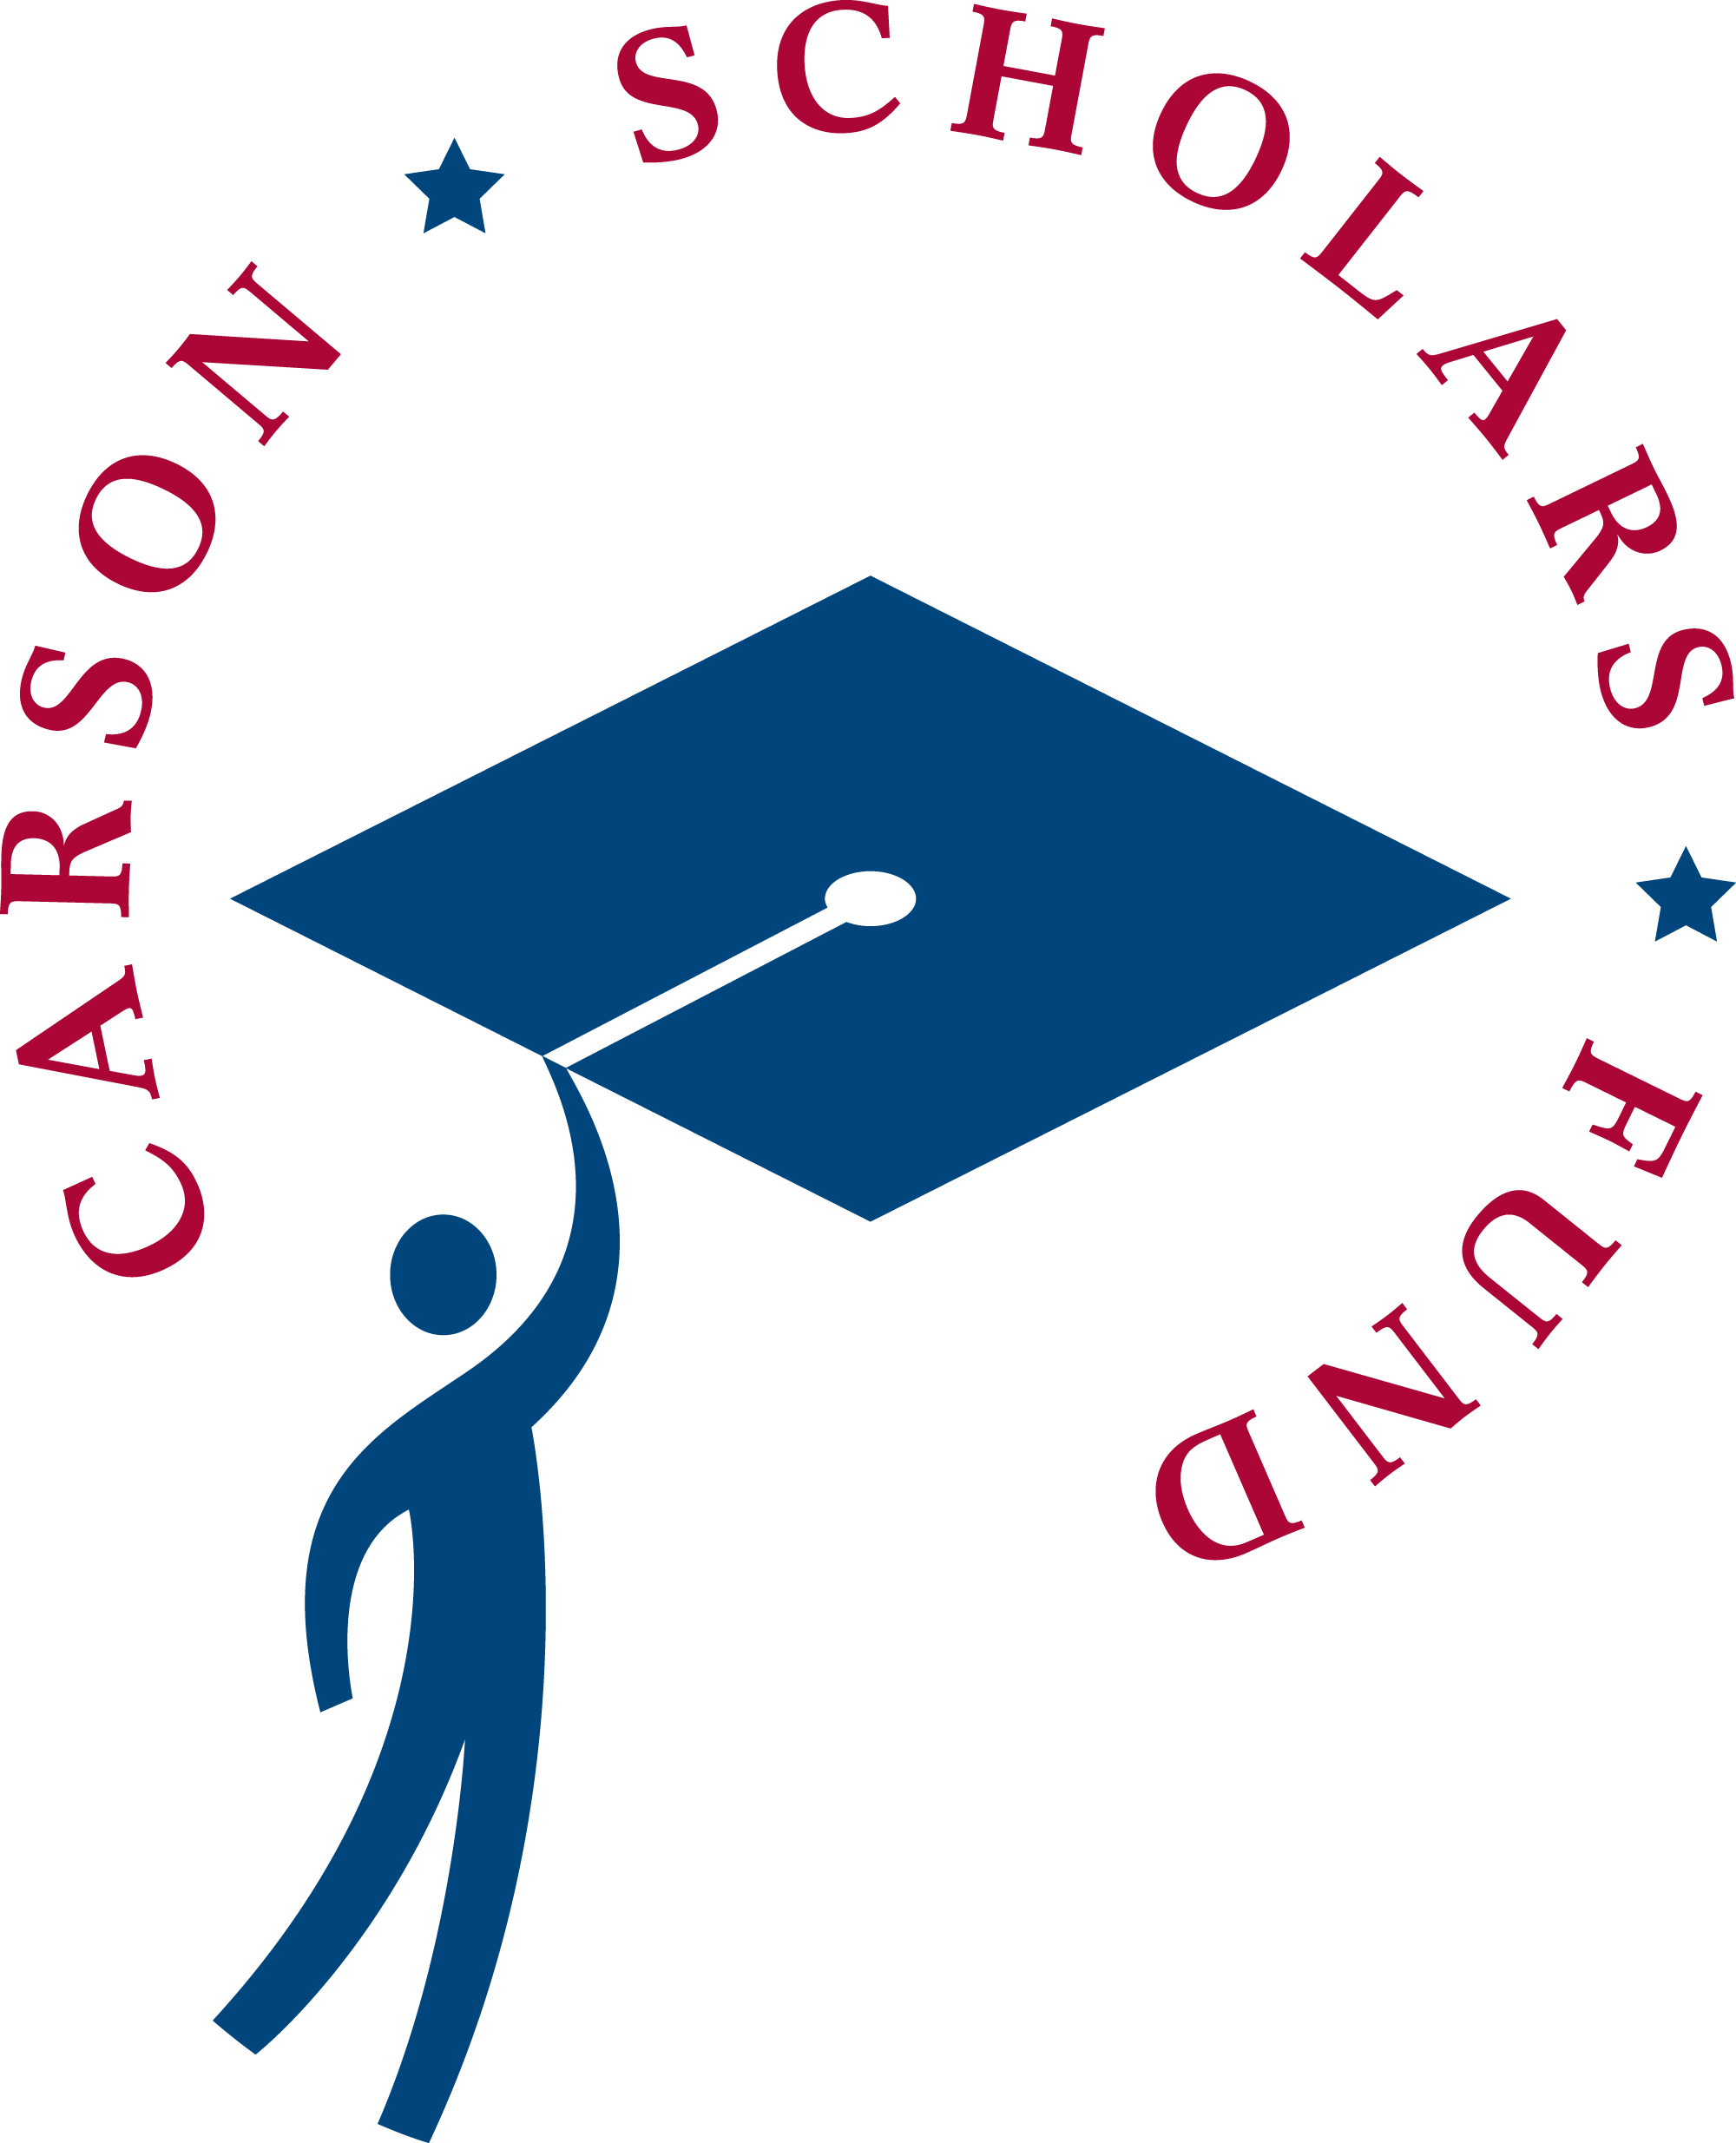 Ben Carson Foundation Scholarship